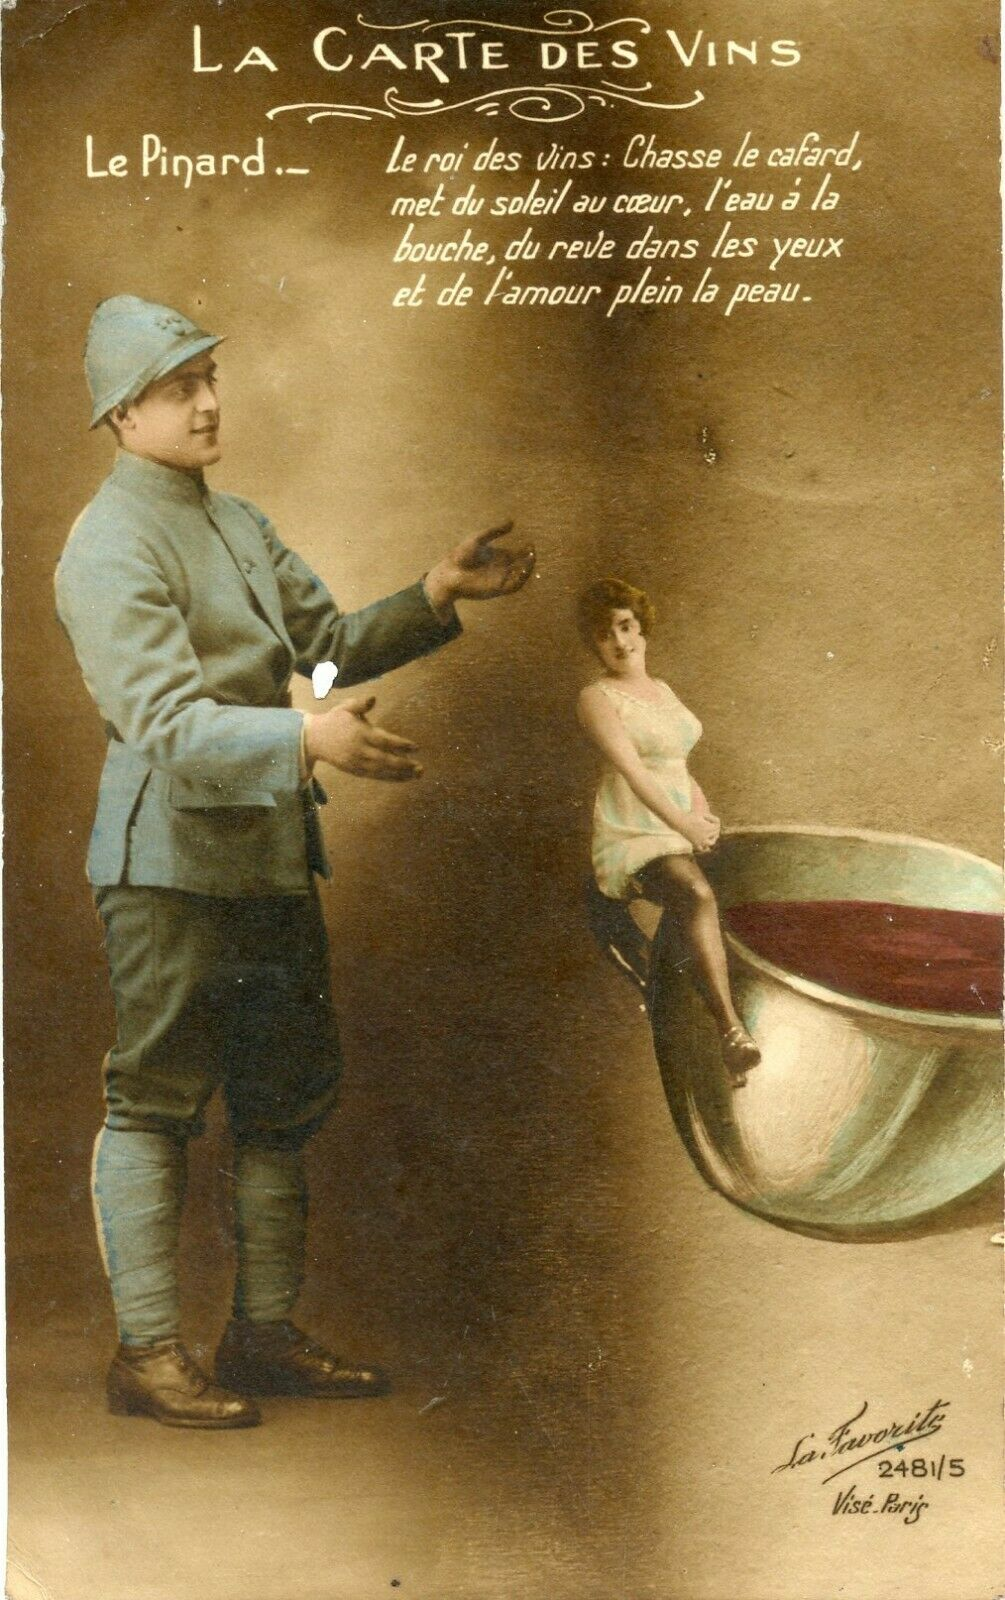 Click image for larger version.  Name:2.3.1. 3 1 7 WW1 French alcohol PINARD 6.jpg Views:1 Size:259.0 KB ID:3652989